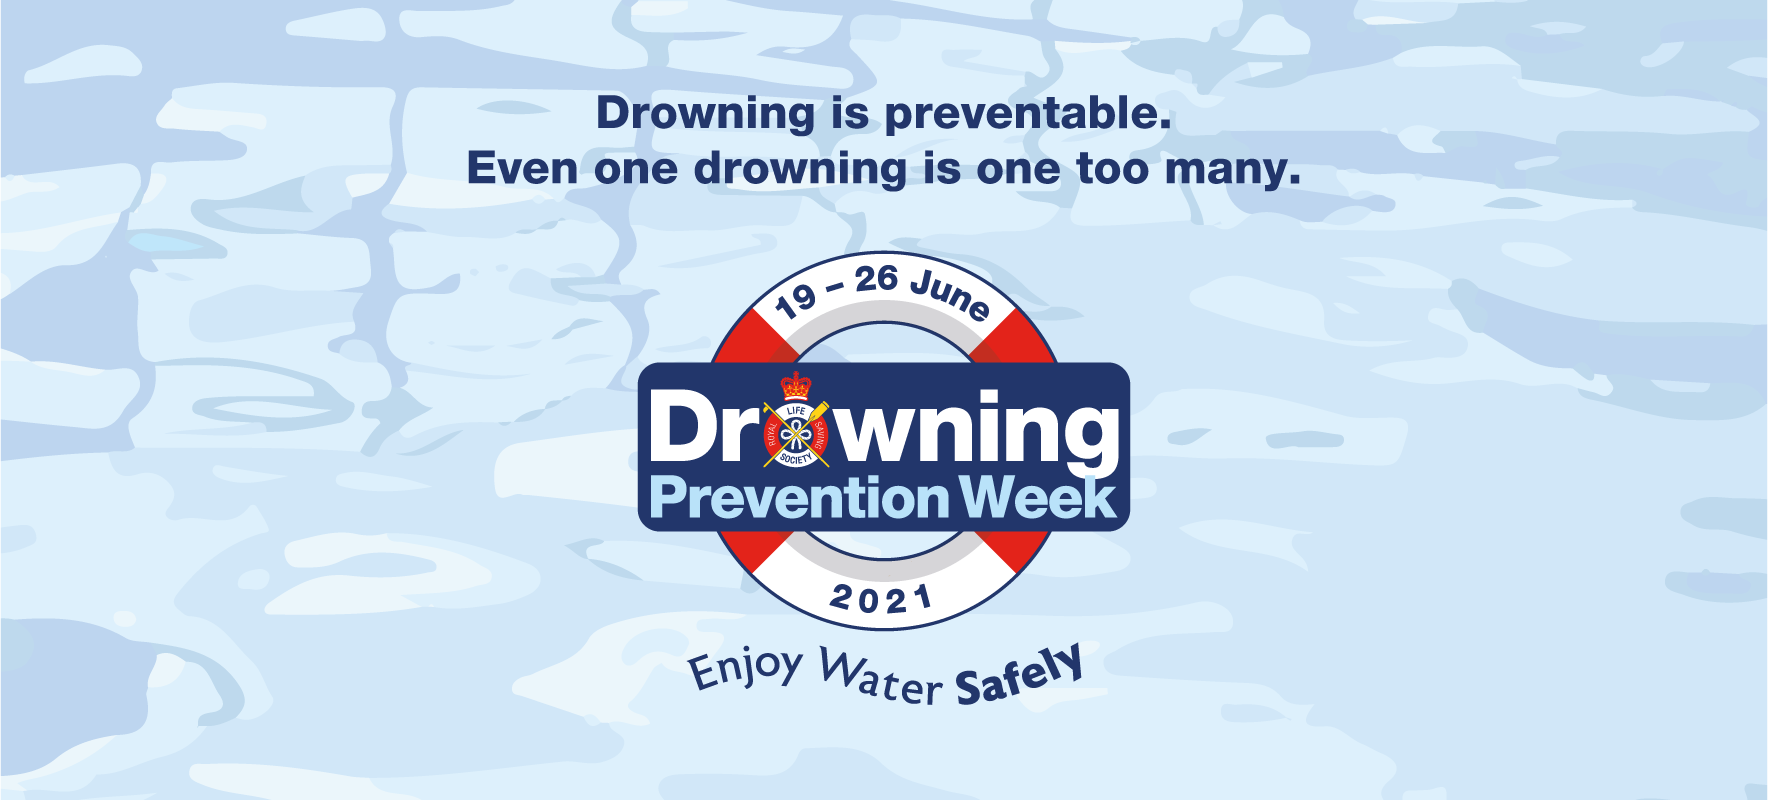 drowning-prevention-week-2021